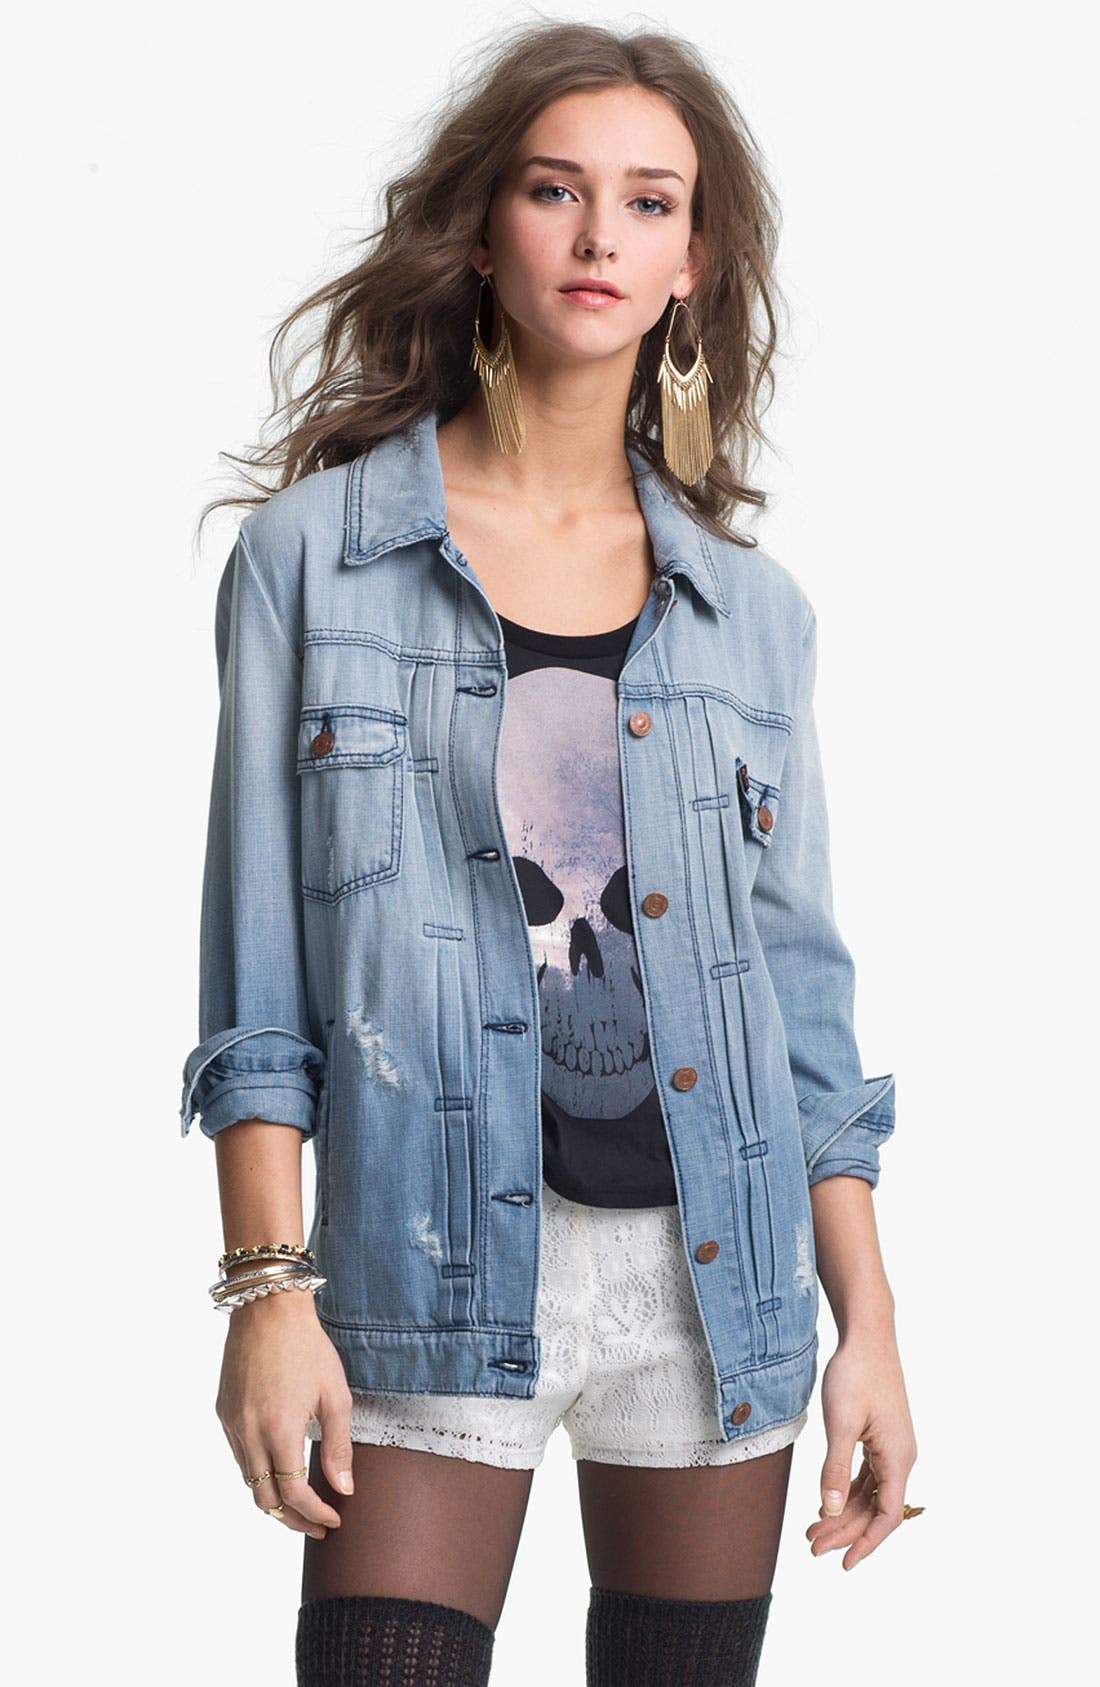 Alternate Image 1 Selected - Levi's® 'Trucker' Oversized Denim Jacket